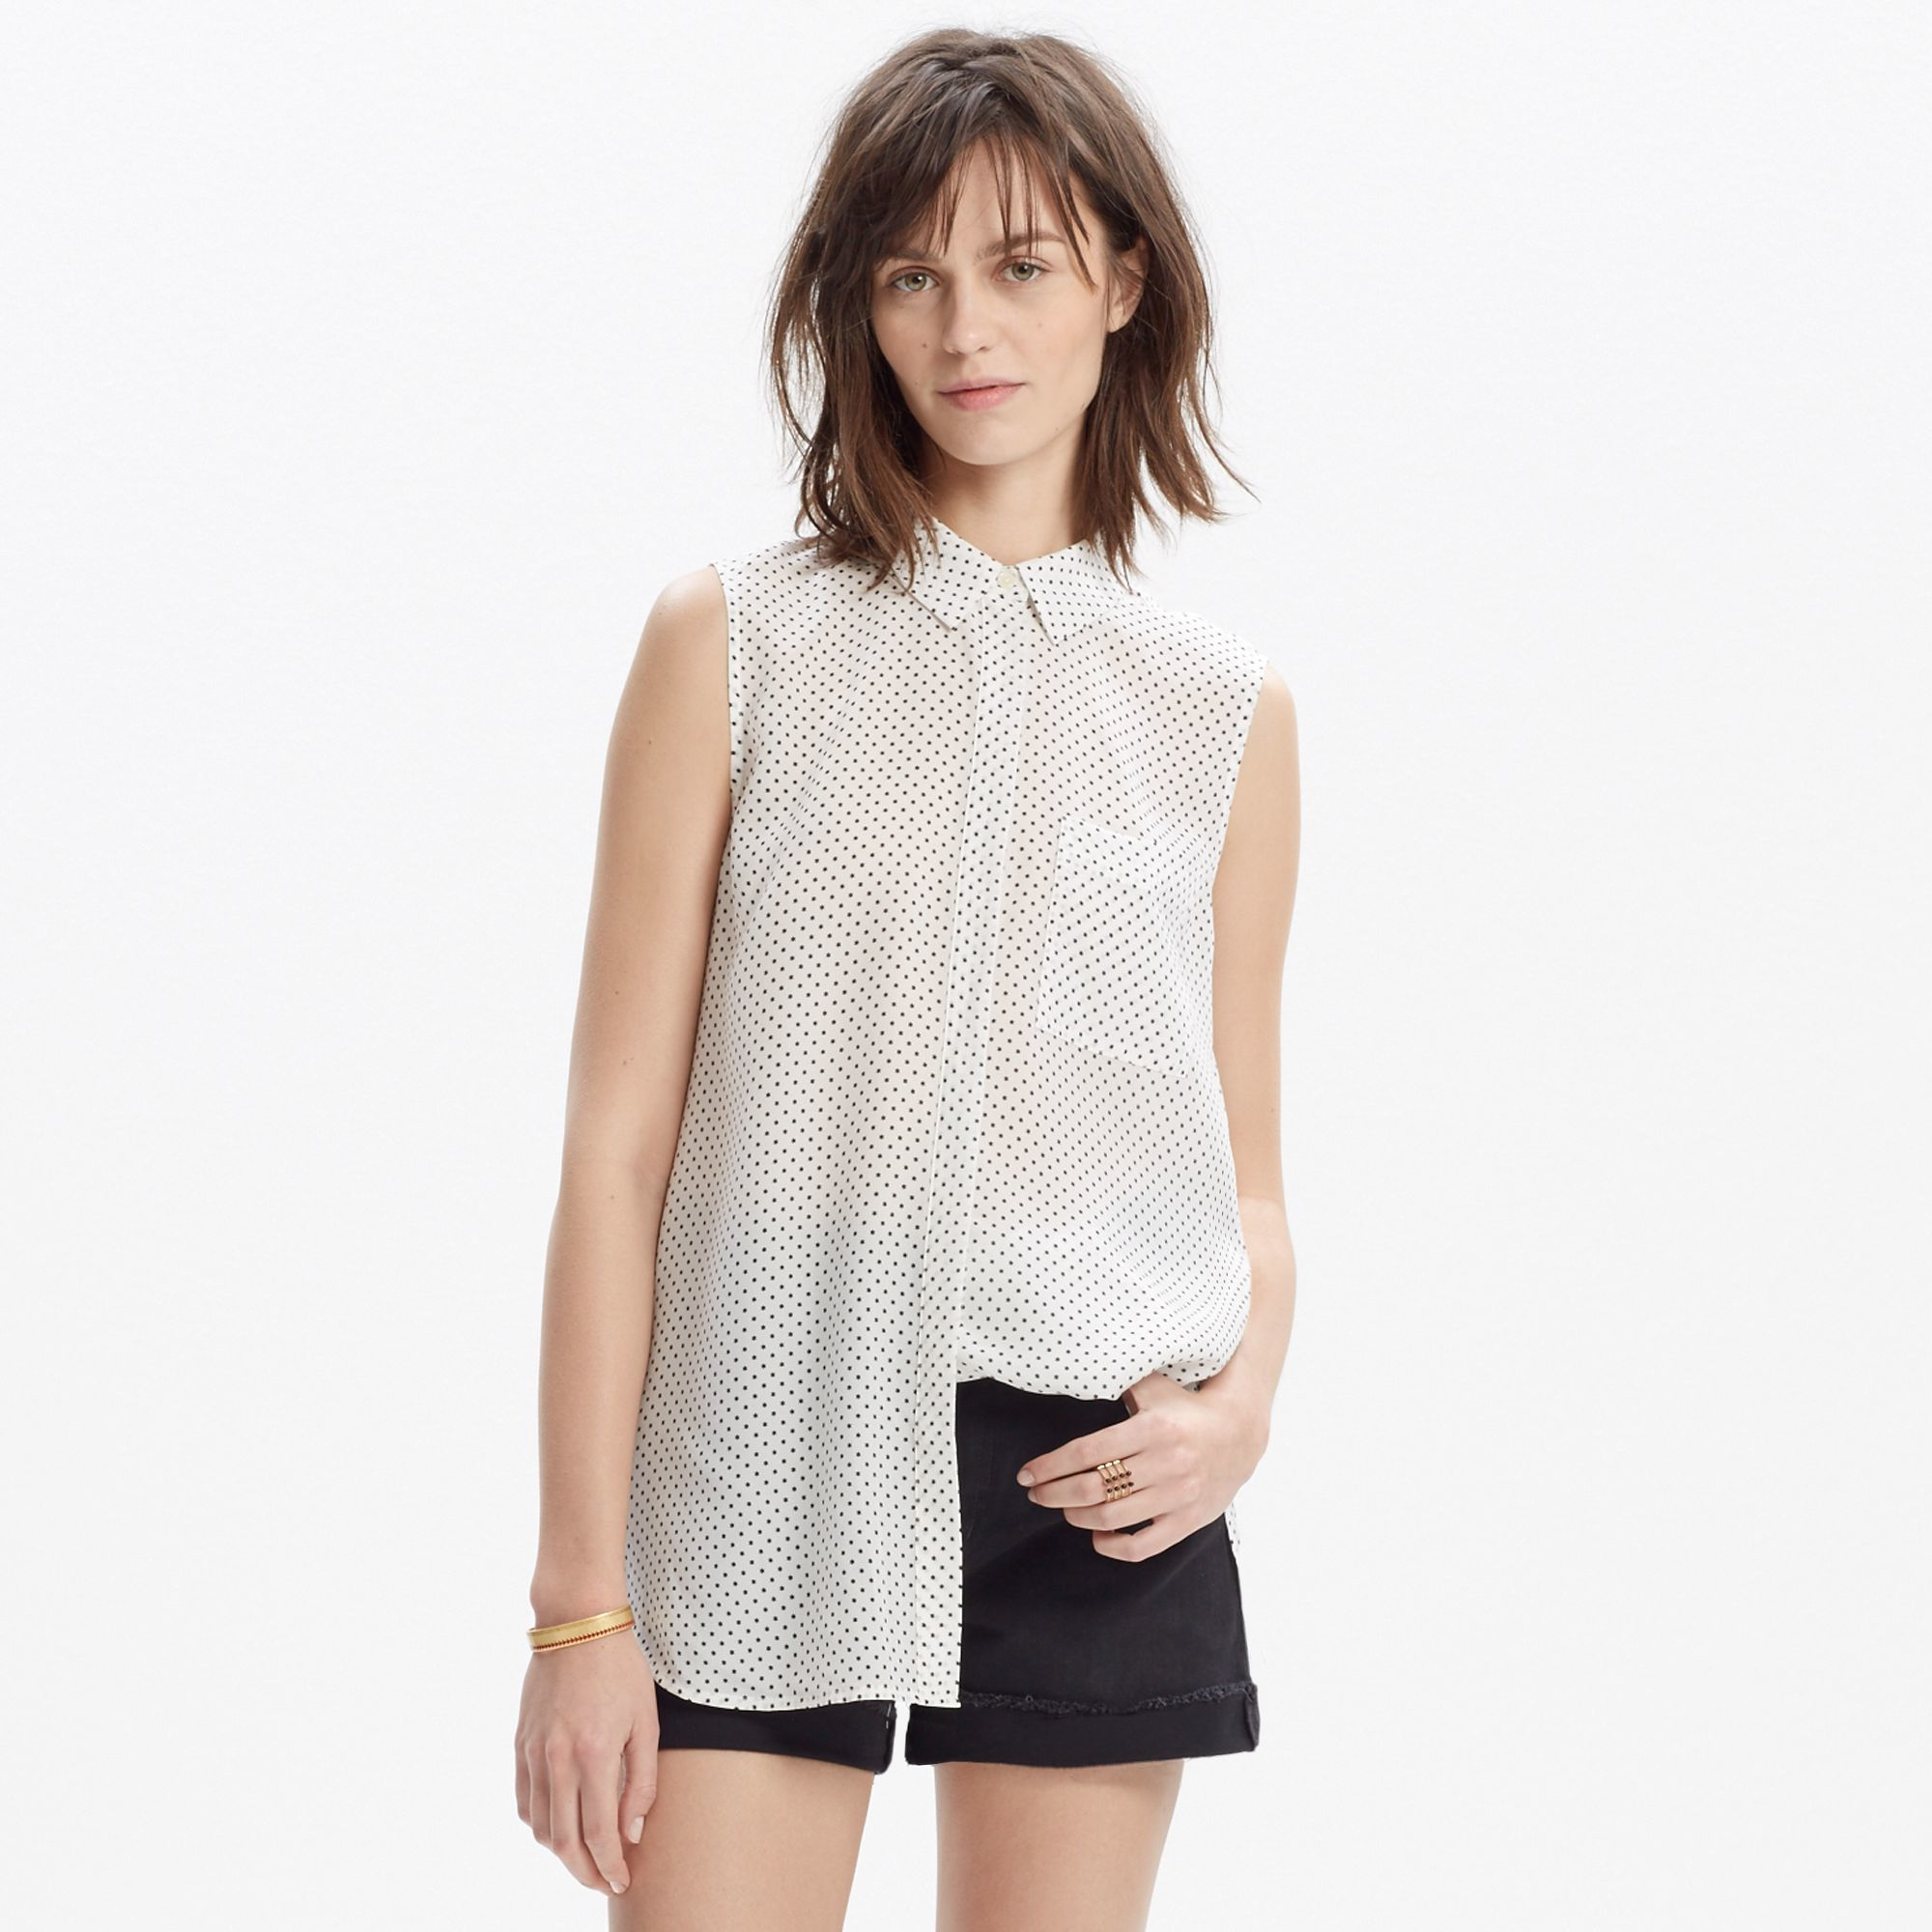 50f59a8589050 Lyst - Madewell Silk Sleeveless Composer Shirt In Star Print in White